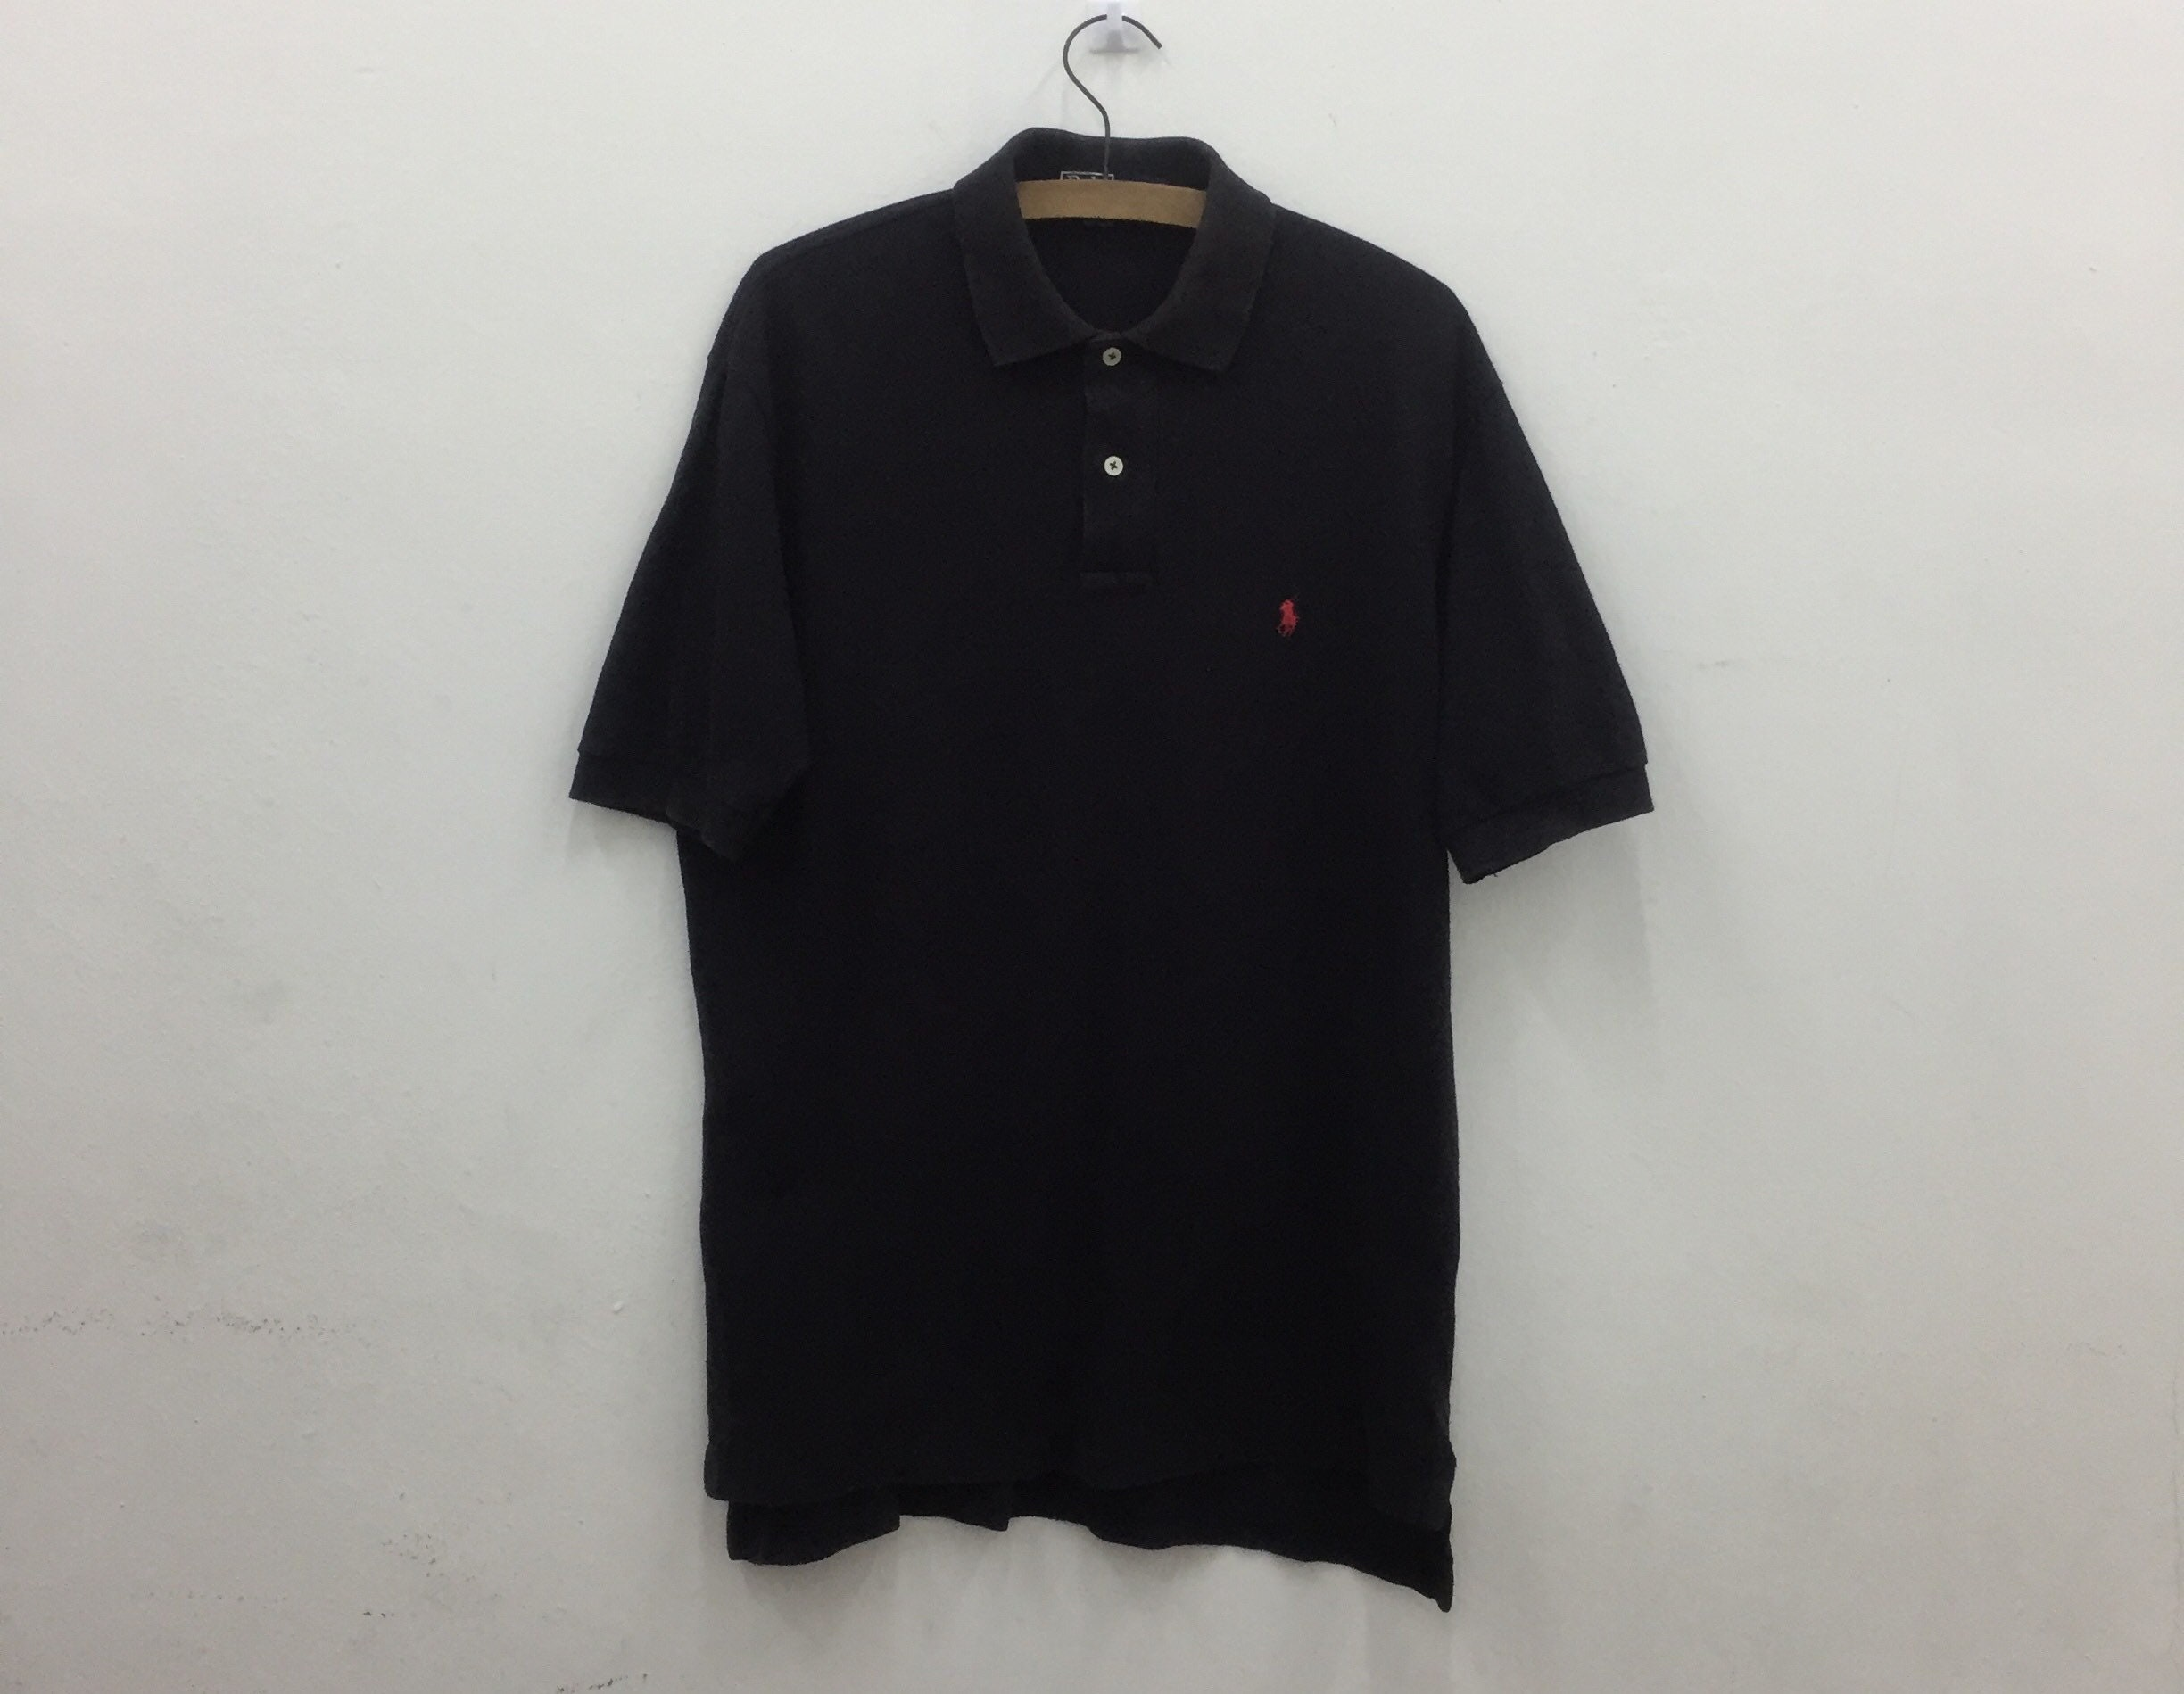 98ba6126 Vintage 90' POLO By RALPH LAUREN Black Collered Polo Shirt   Etsy